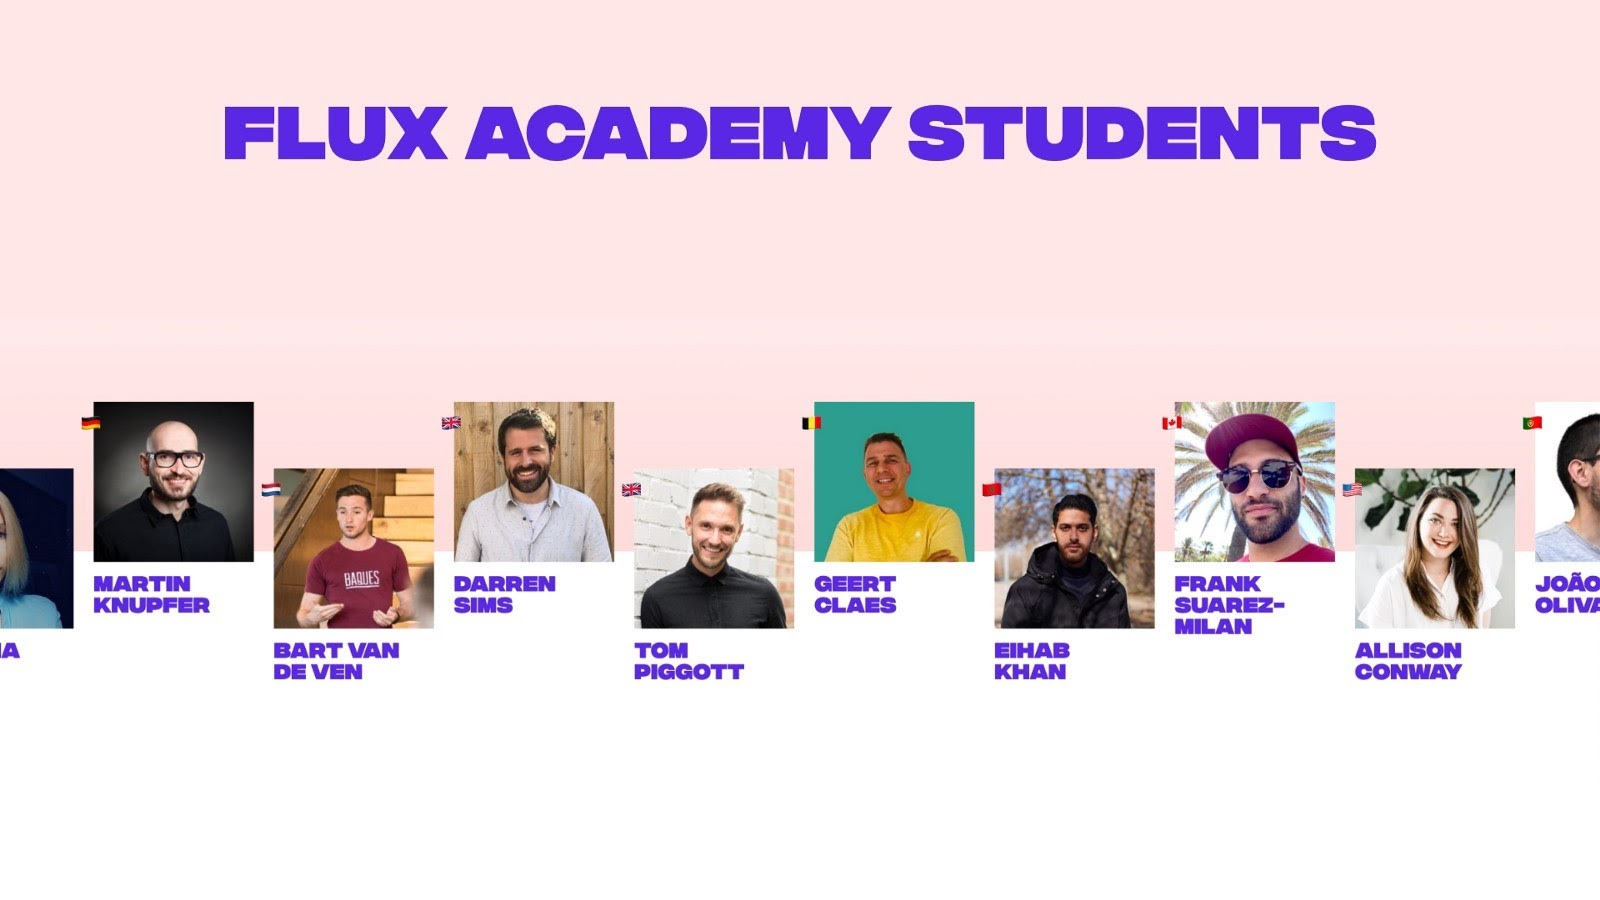 Flux Academy students from all over the world